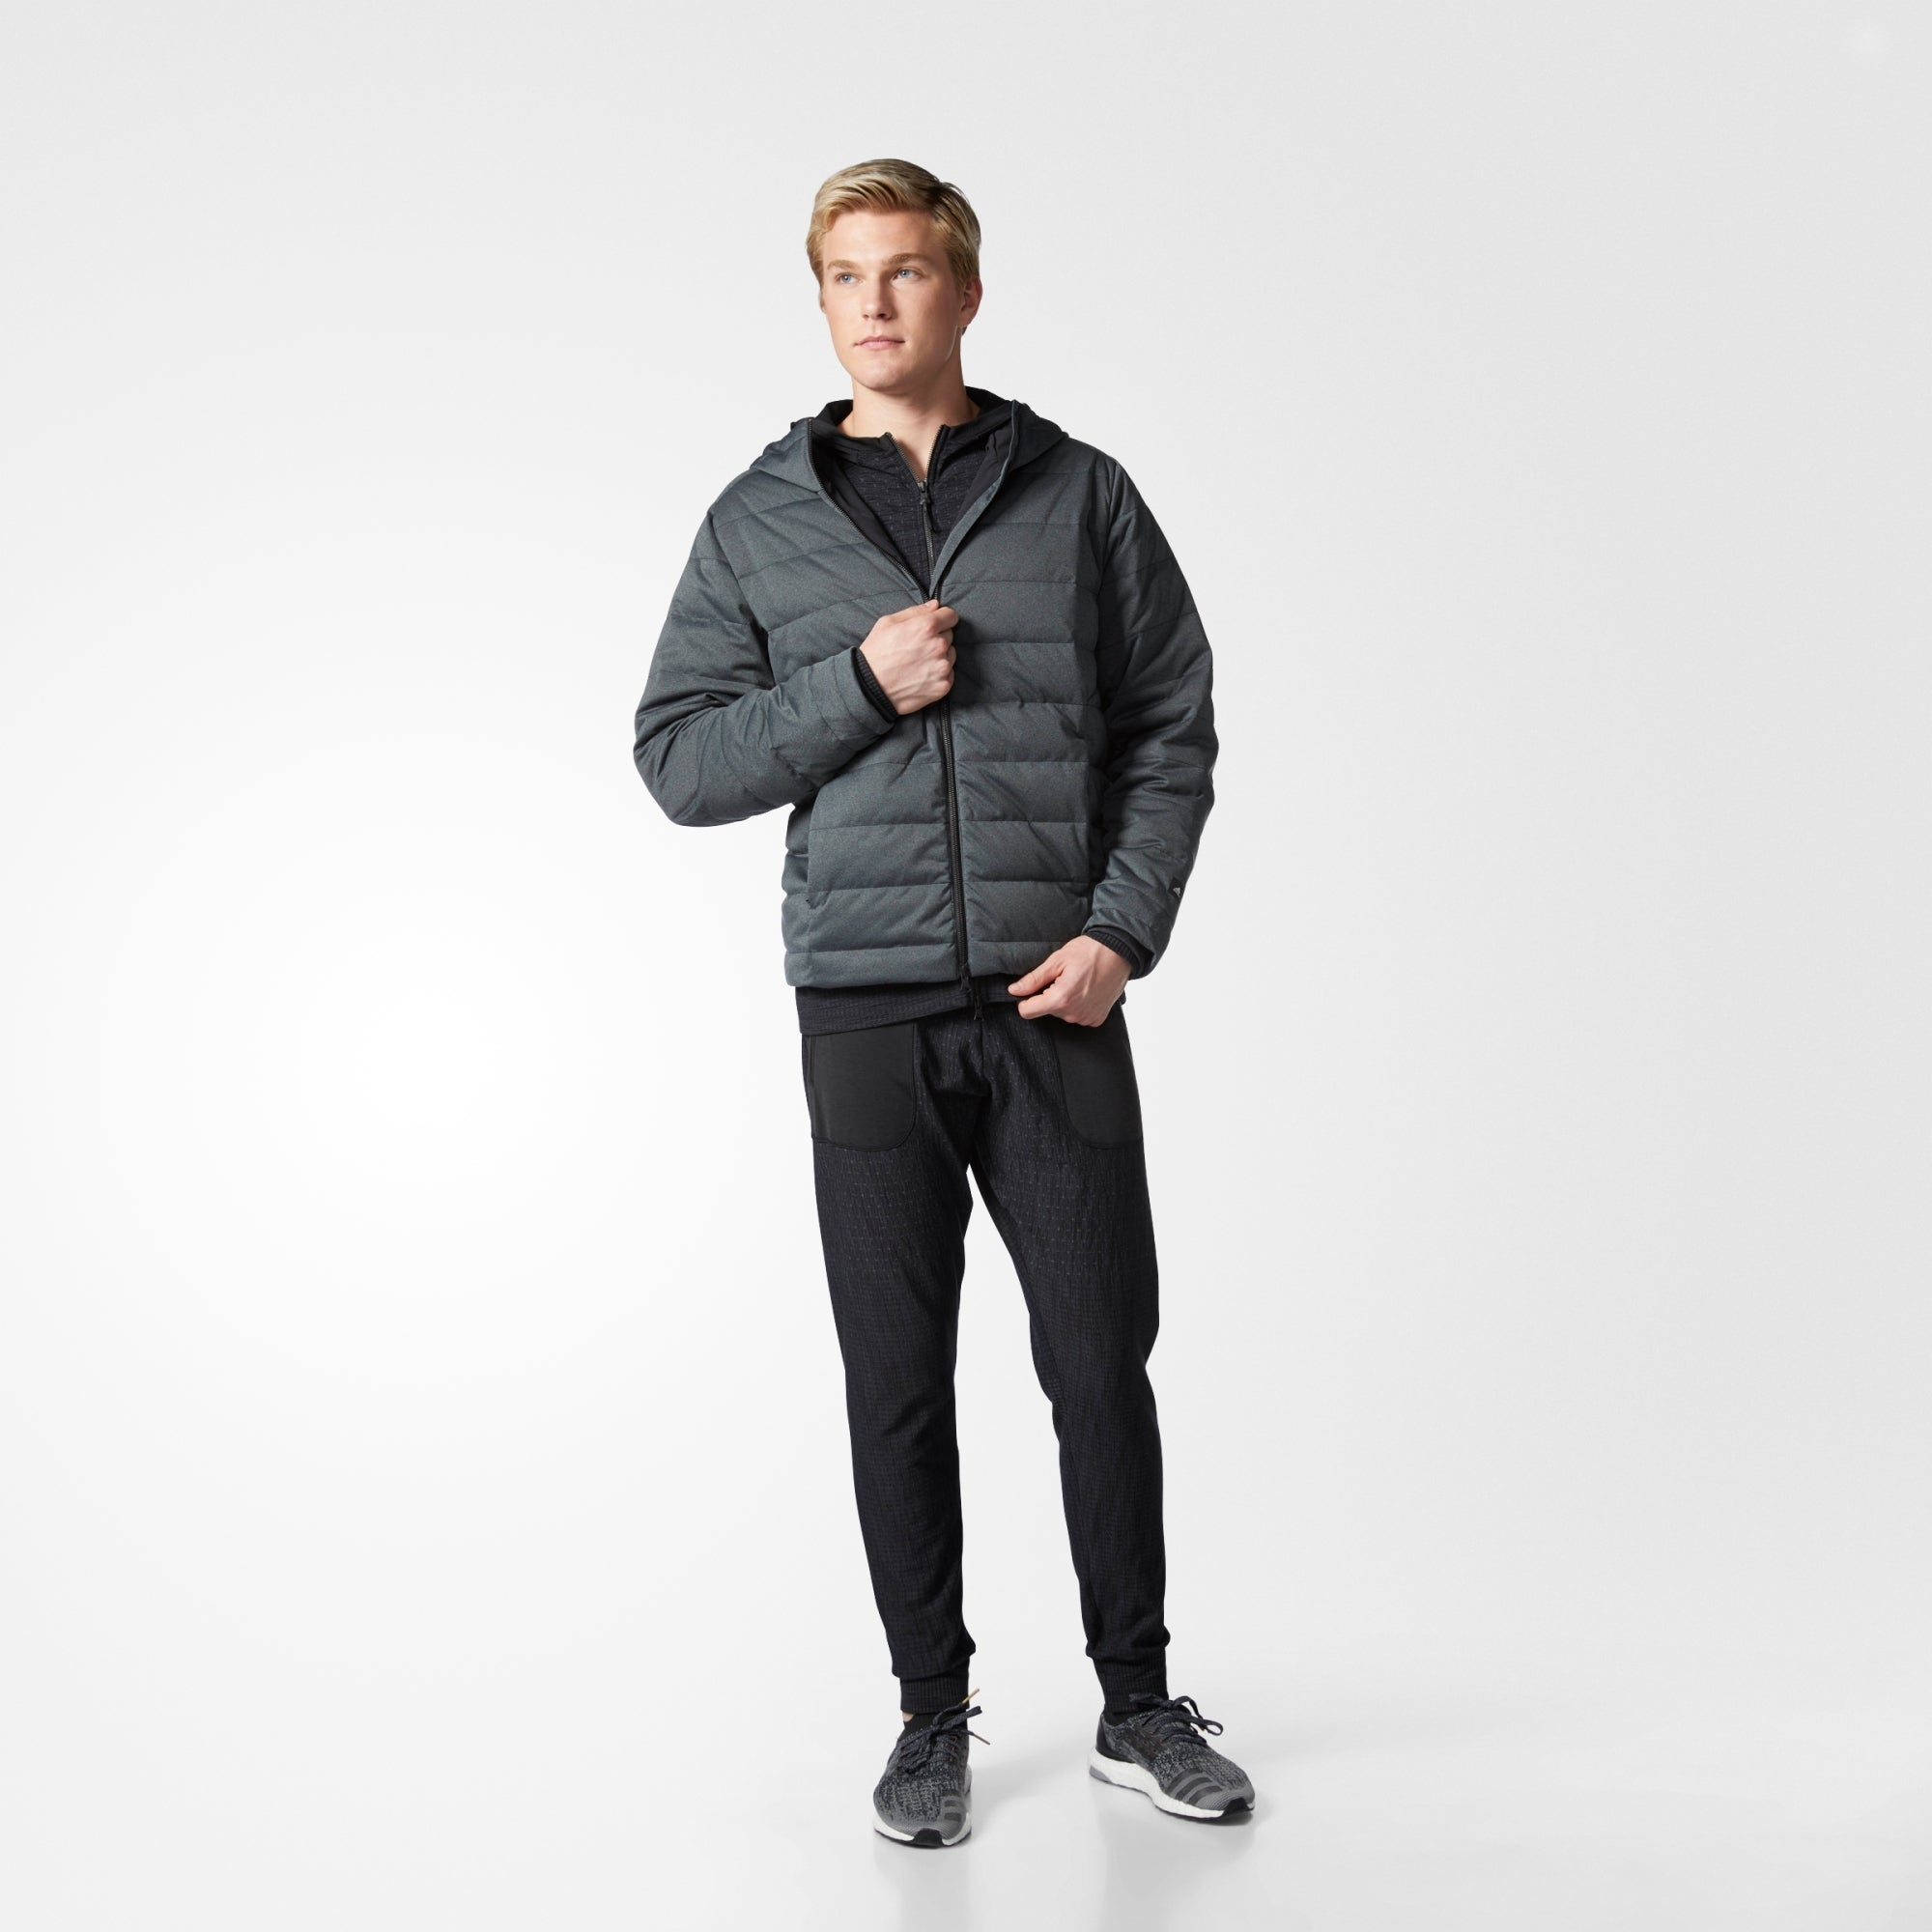 02c40894cd91 Men s adidas Athletics x Reigning Champ Down Jacket BR8397